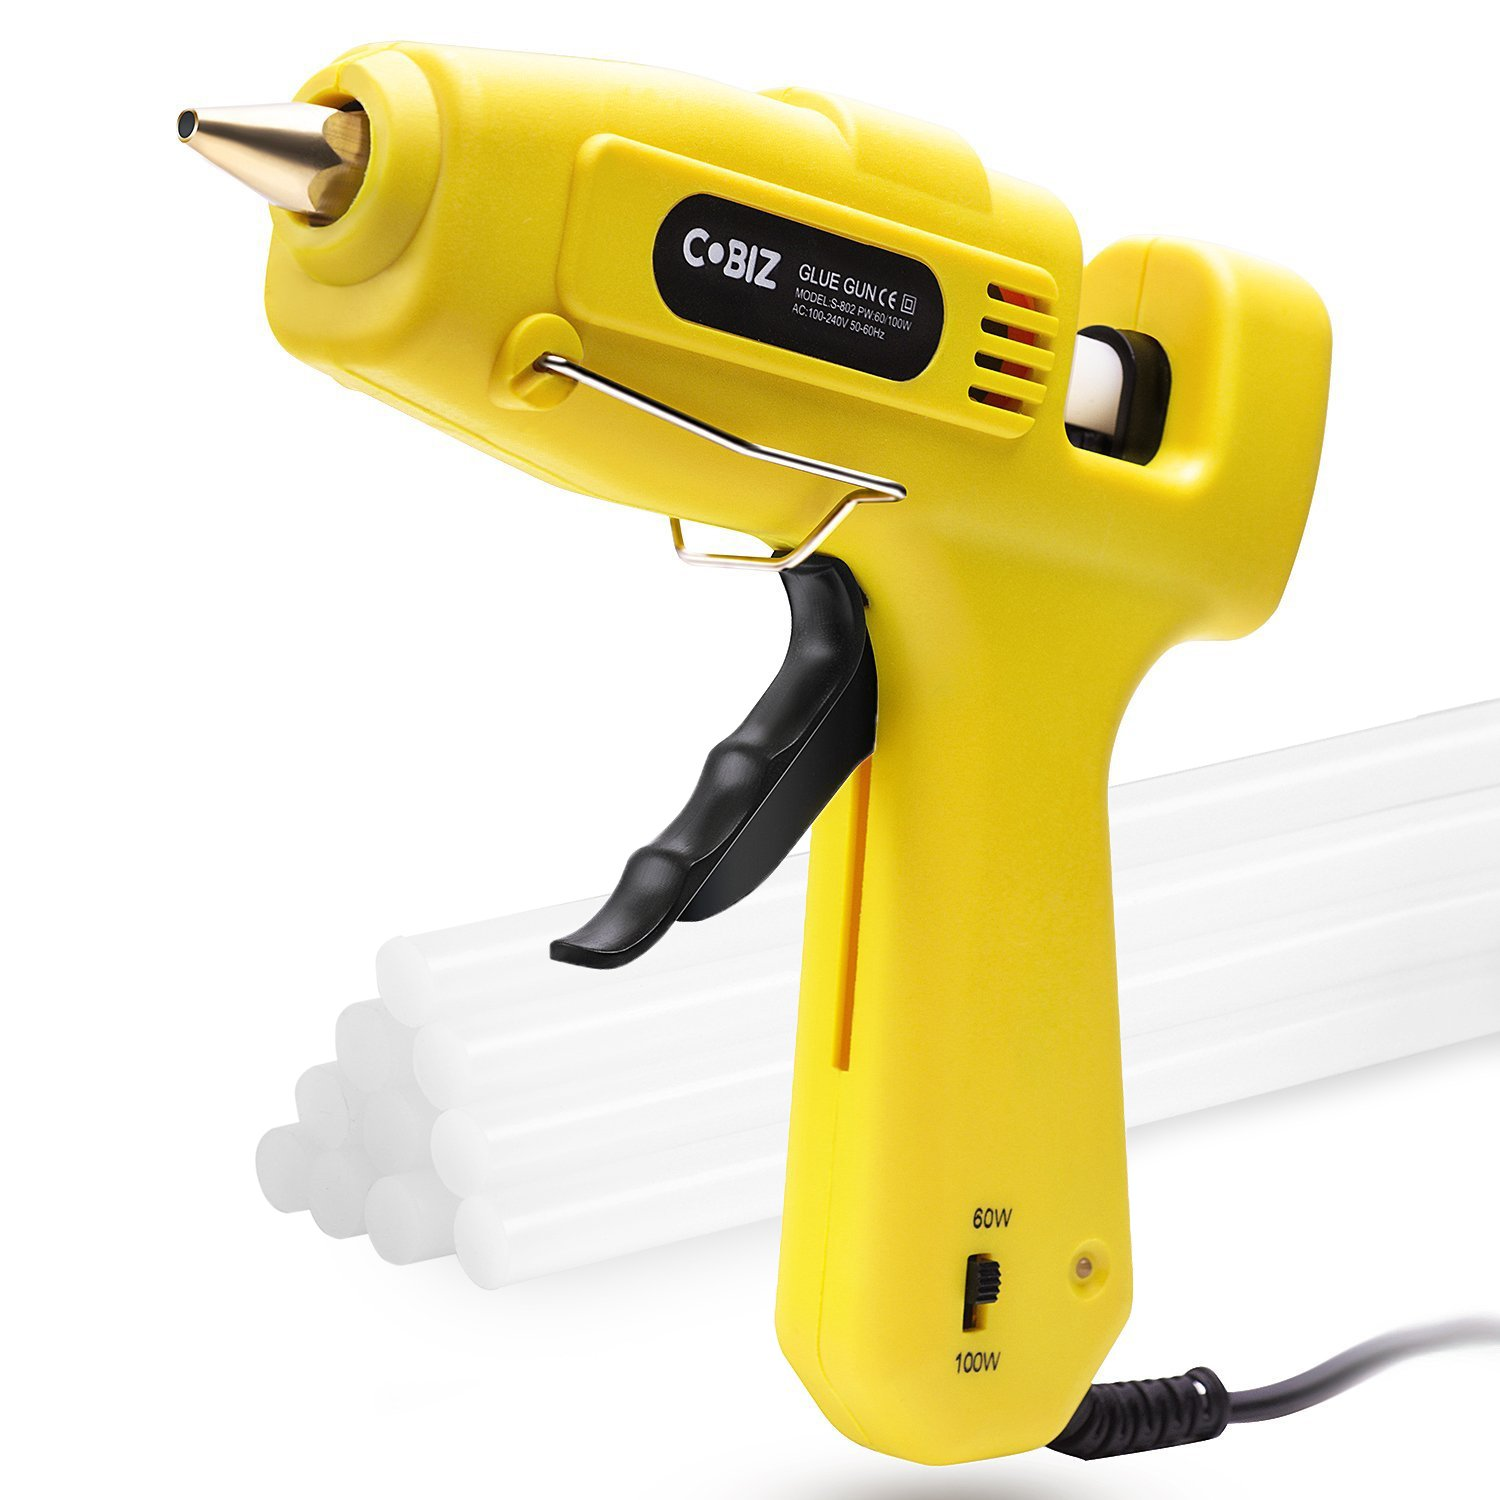 Hot Glue Gun, Cobiz Full Size (Not Mini) 60/100W Dual Power High Temp Heavy Duty Melt Glue Gun Kit with 10 Pcs Premium Glue Sticks(0.43'' x 8'') for Arts & Crafts Use,Christmas Decoration/Gifts